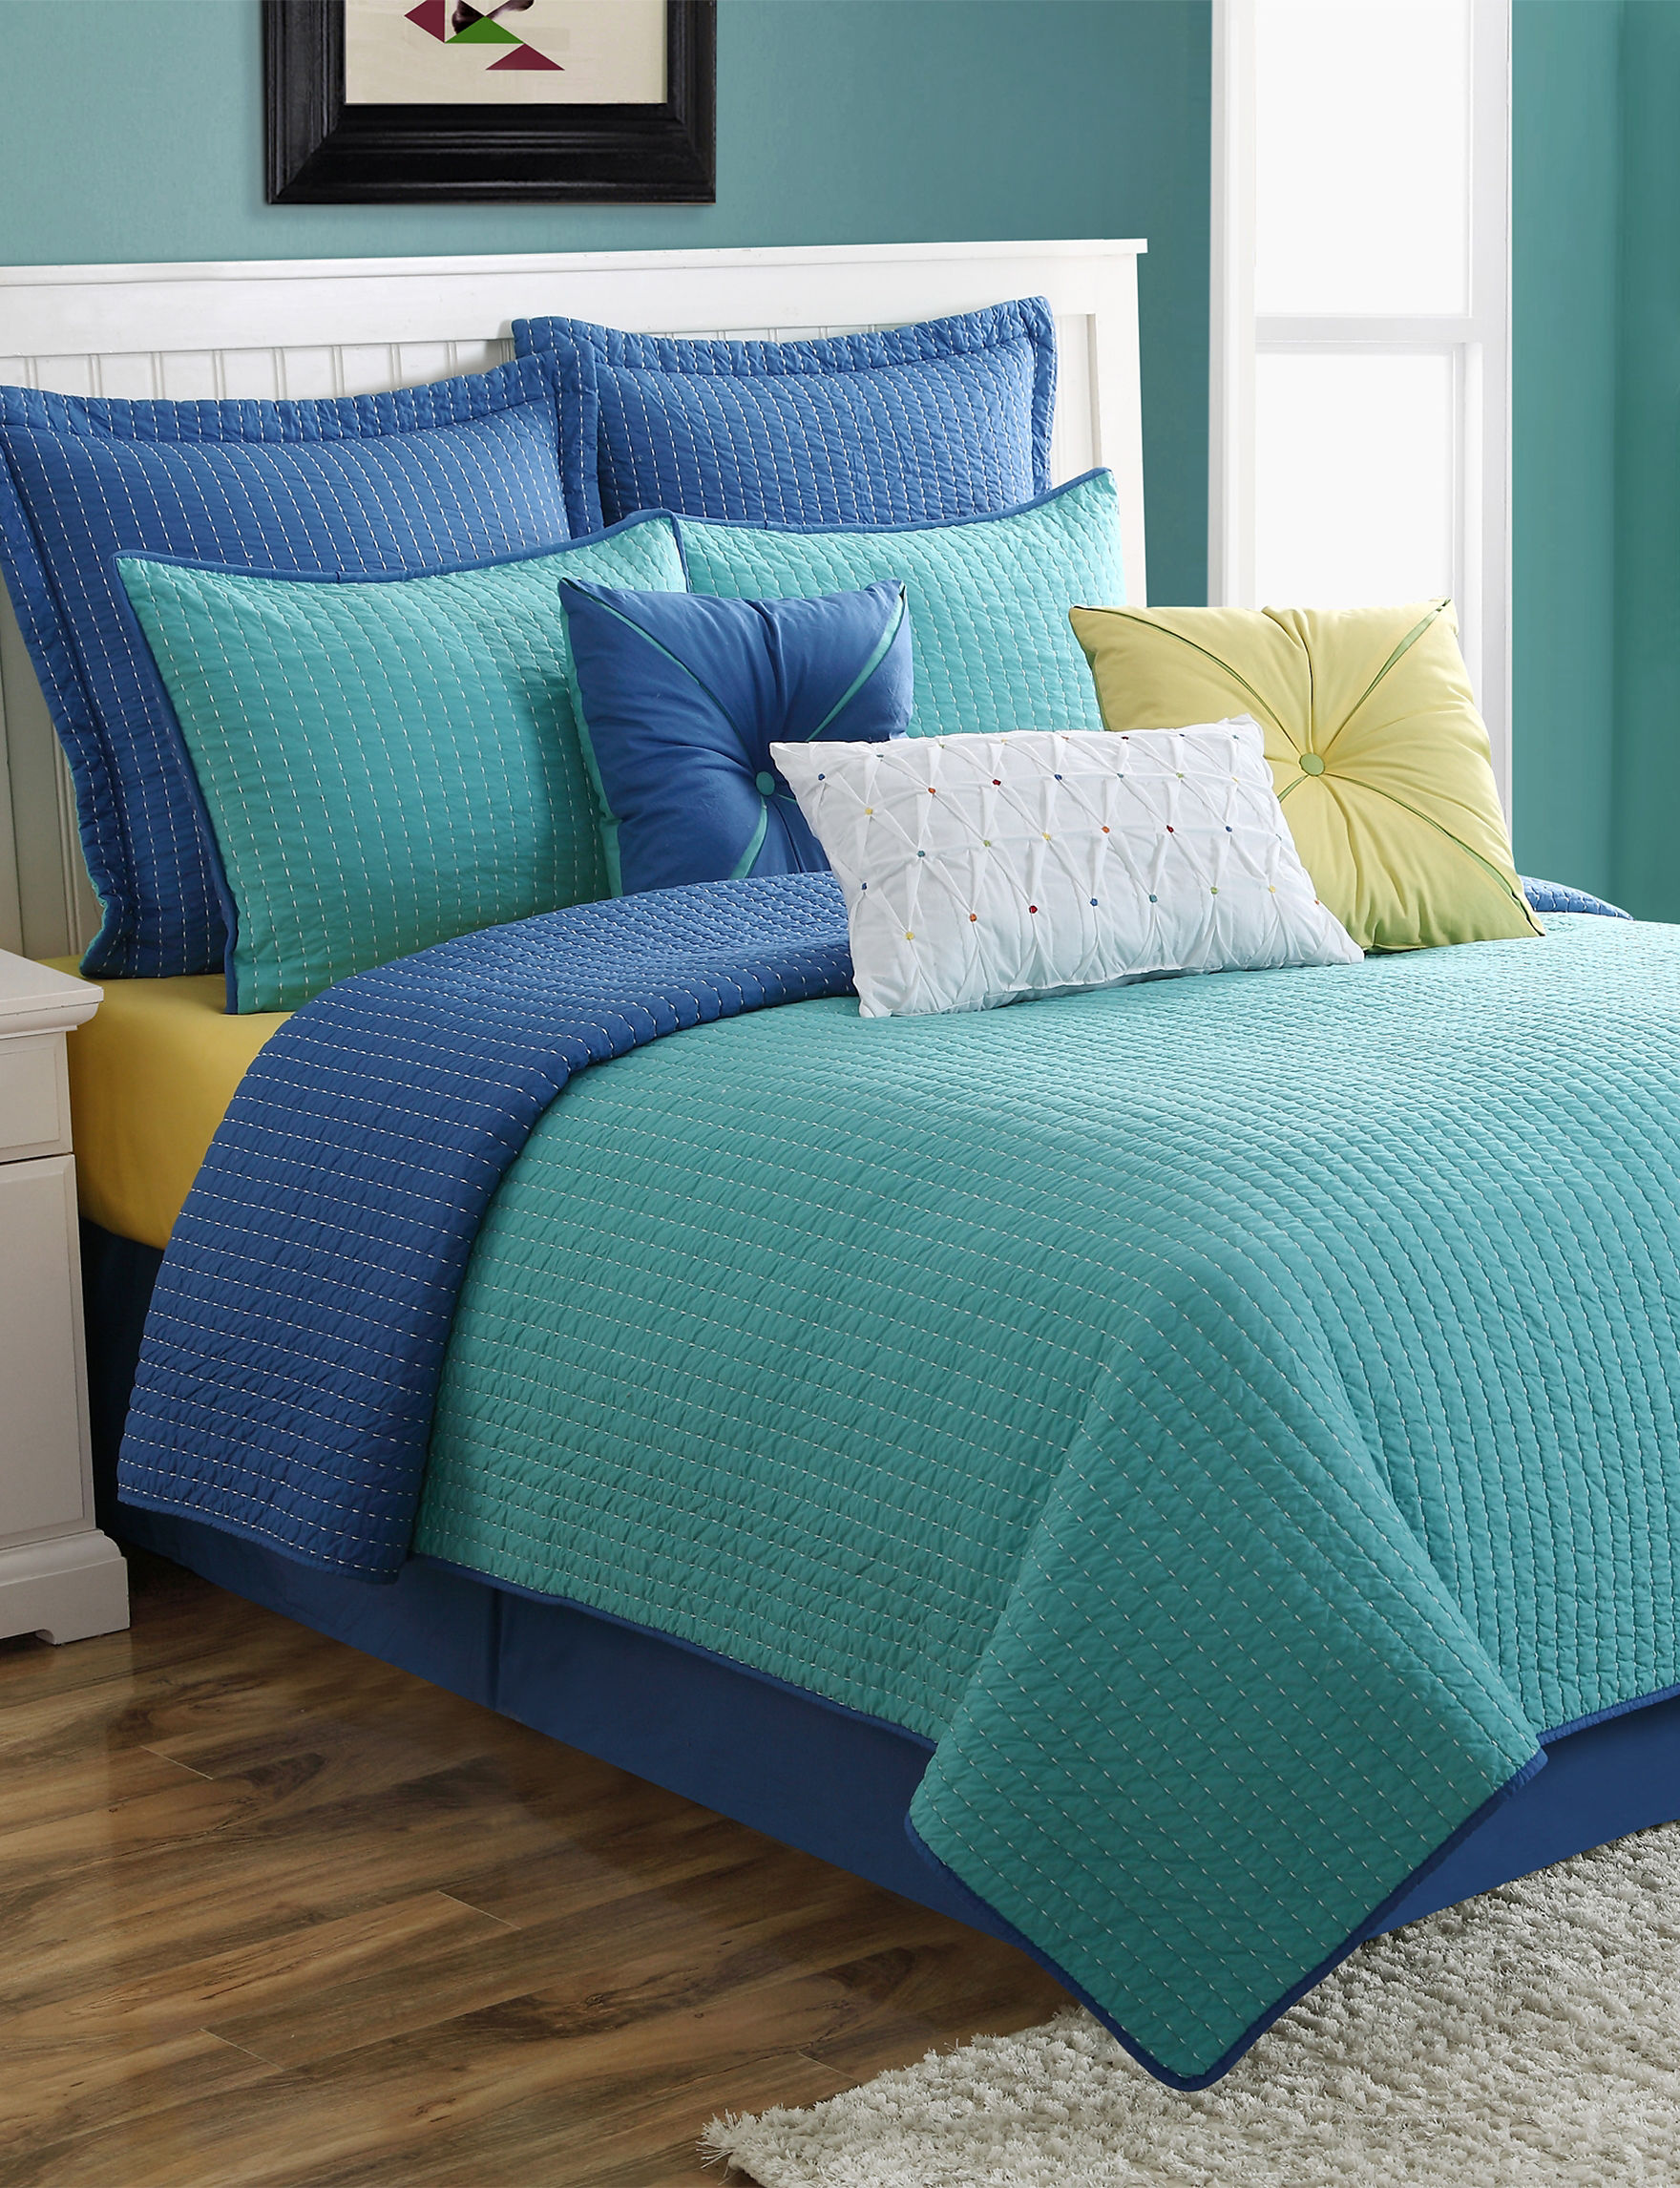 Fiesta Turqouise Quilts & Quilt Sets